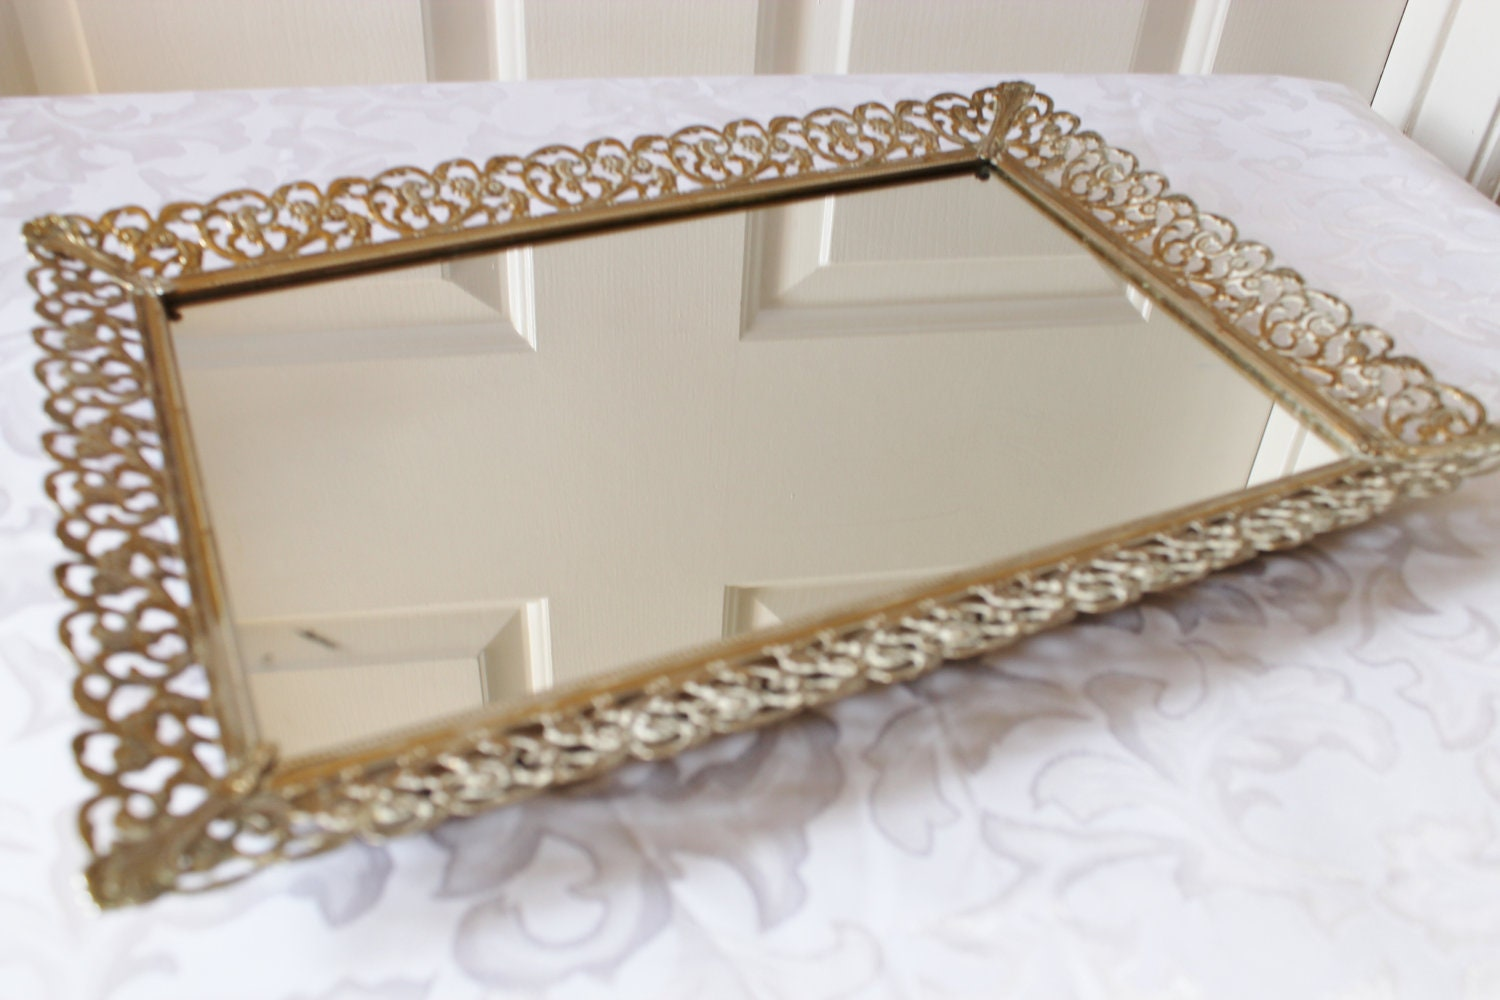 Vintage Gold Vanity Mirror Perfume Tray Metal Filigree : ilfullxfull365203769runh from www.etsy.com size 1500 x 1000 jpeg 177kB